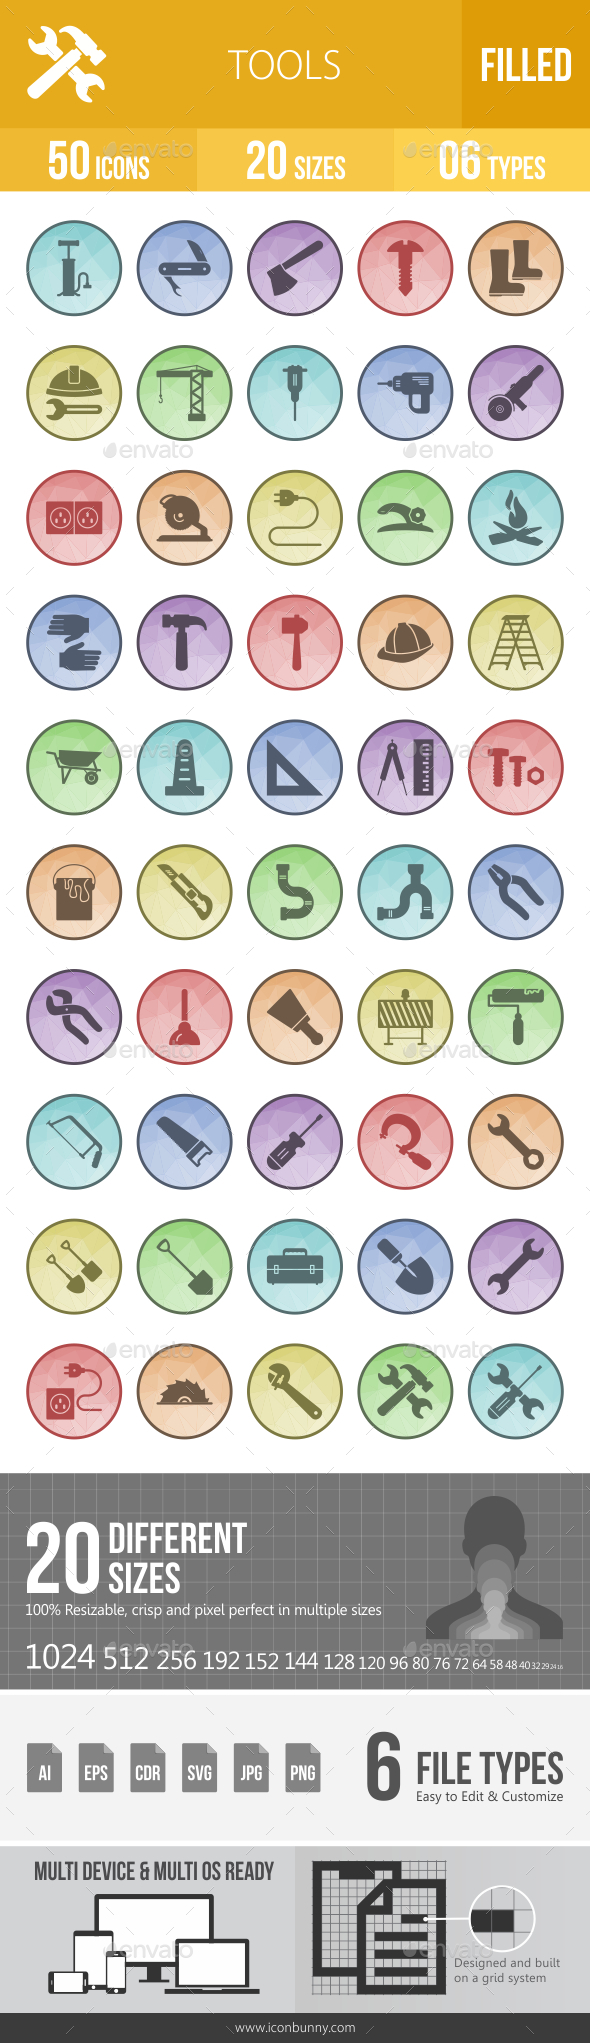 GraphicRiver 50 Tools Filled Low Poly Icons 21176490